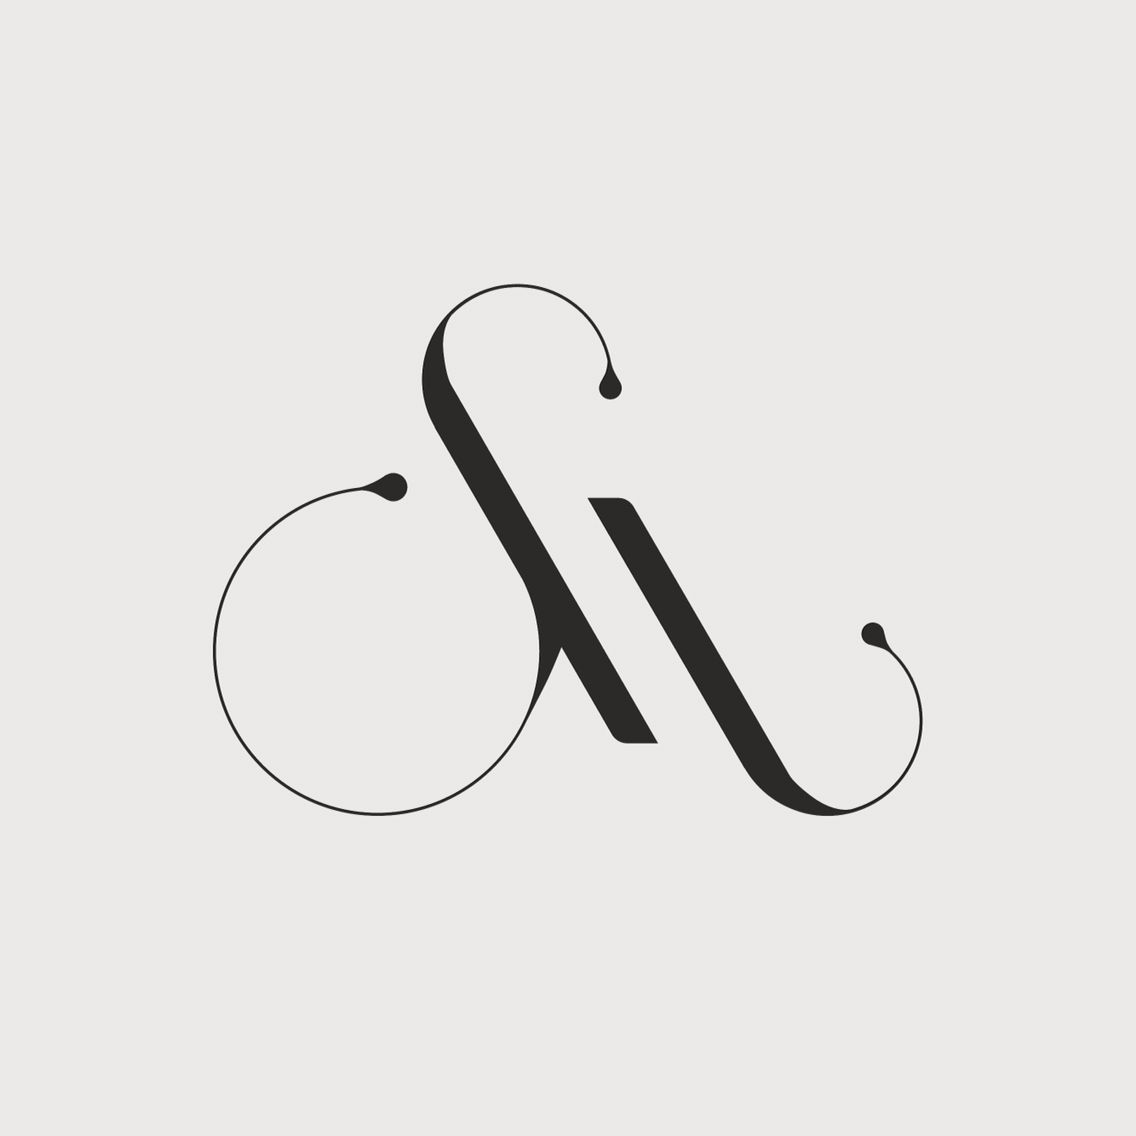 Sm monogram for studio muir identity by hope meng design